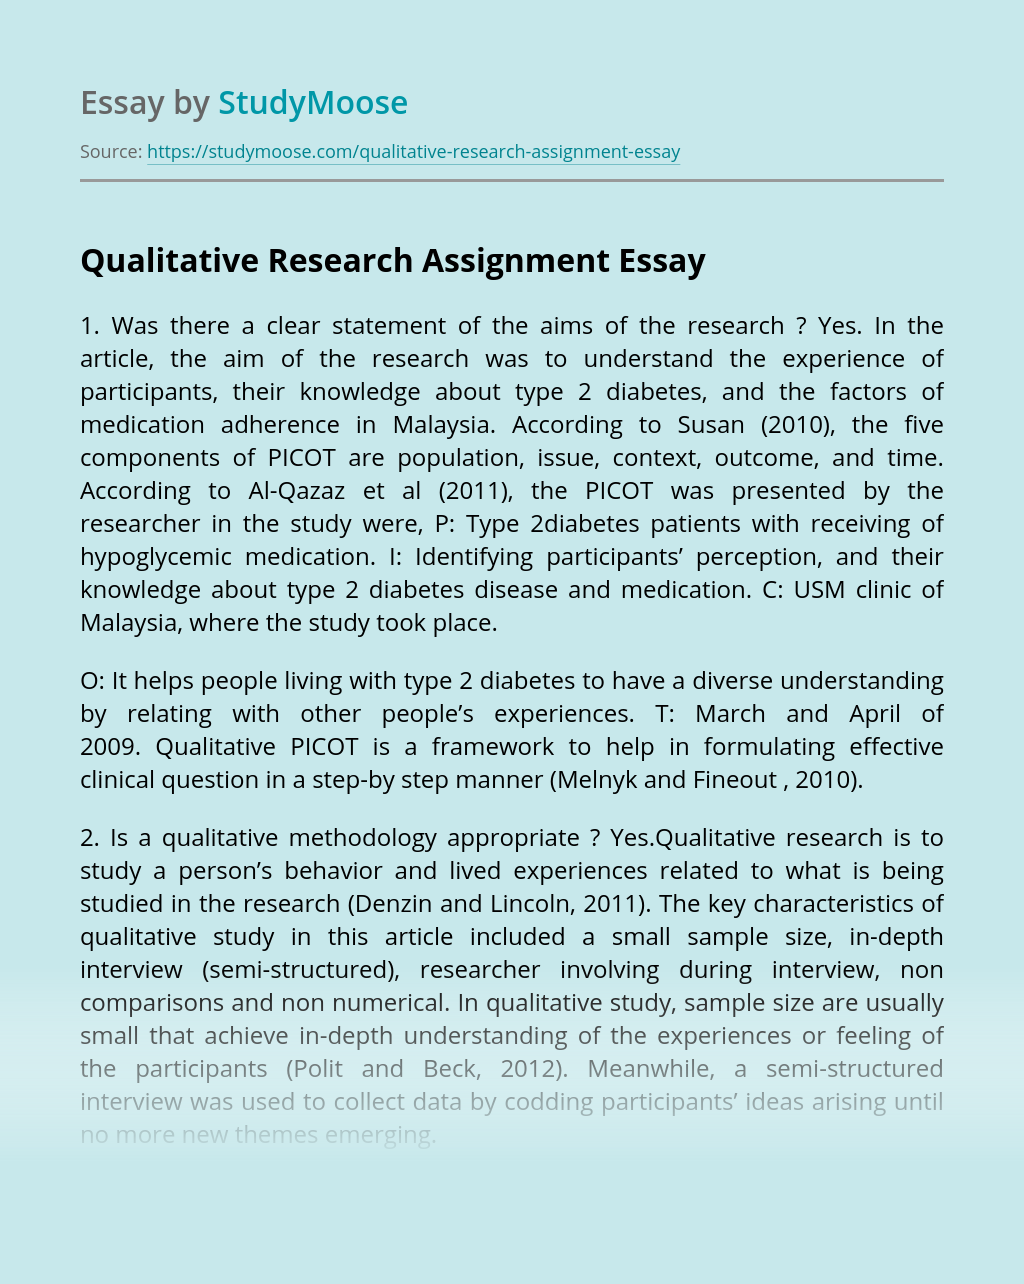 Qualitative Research Assignment